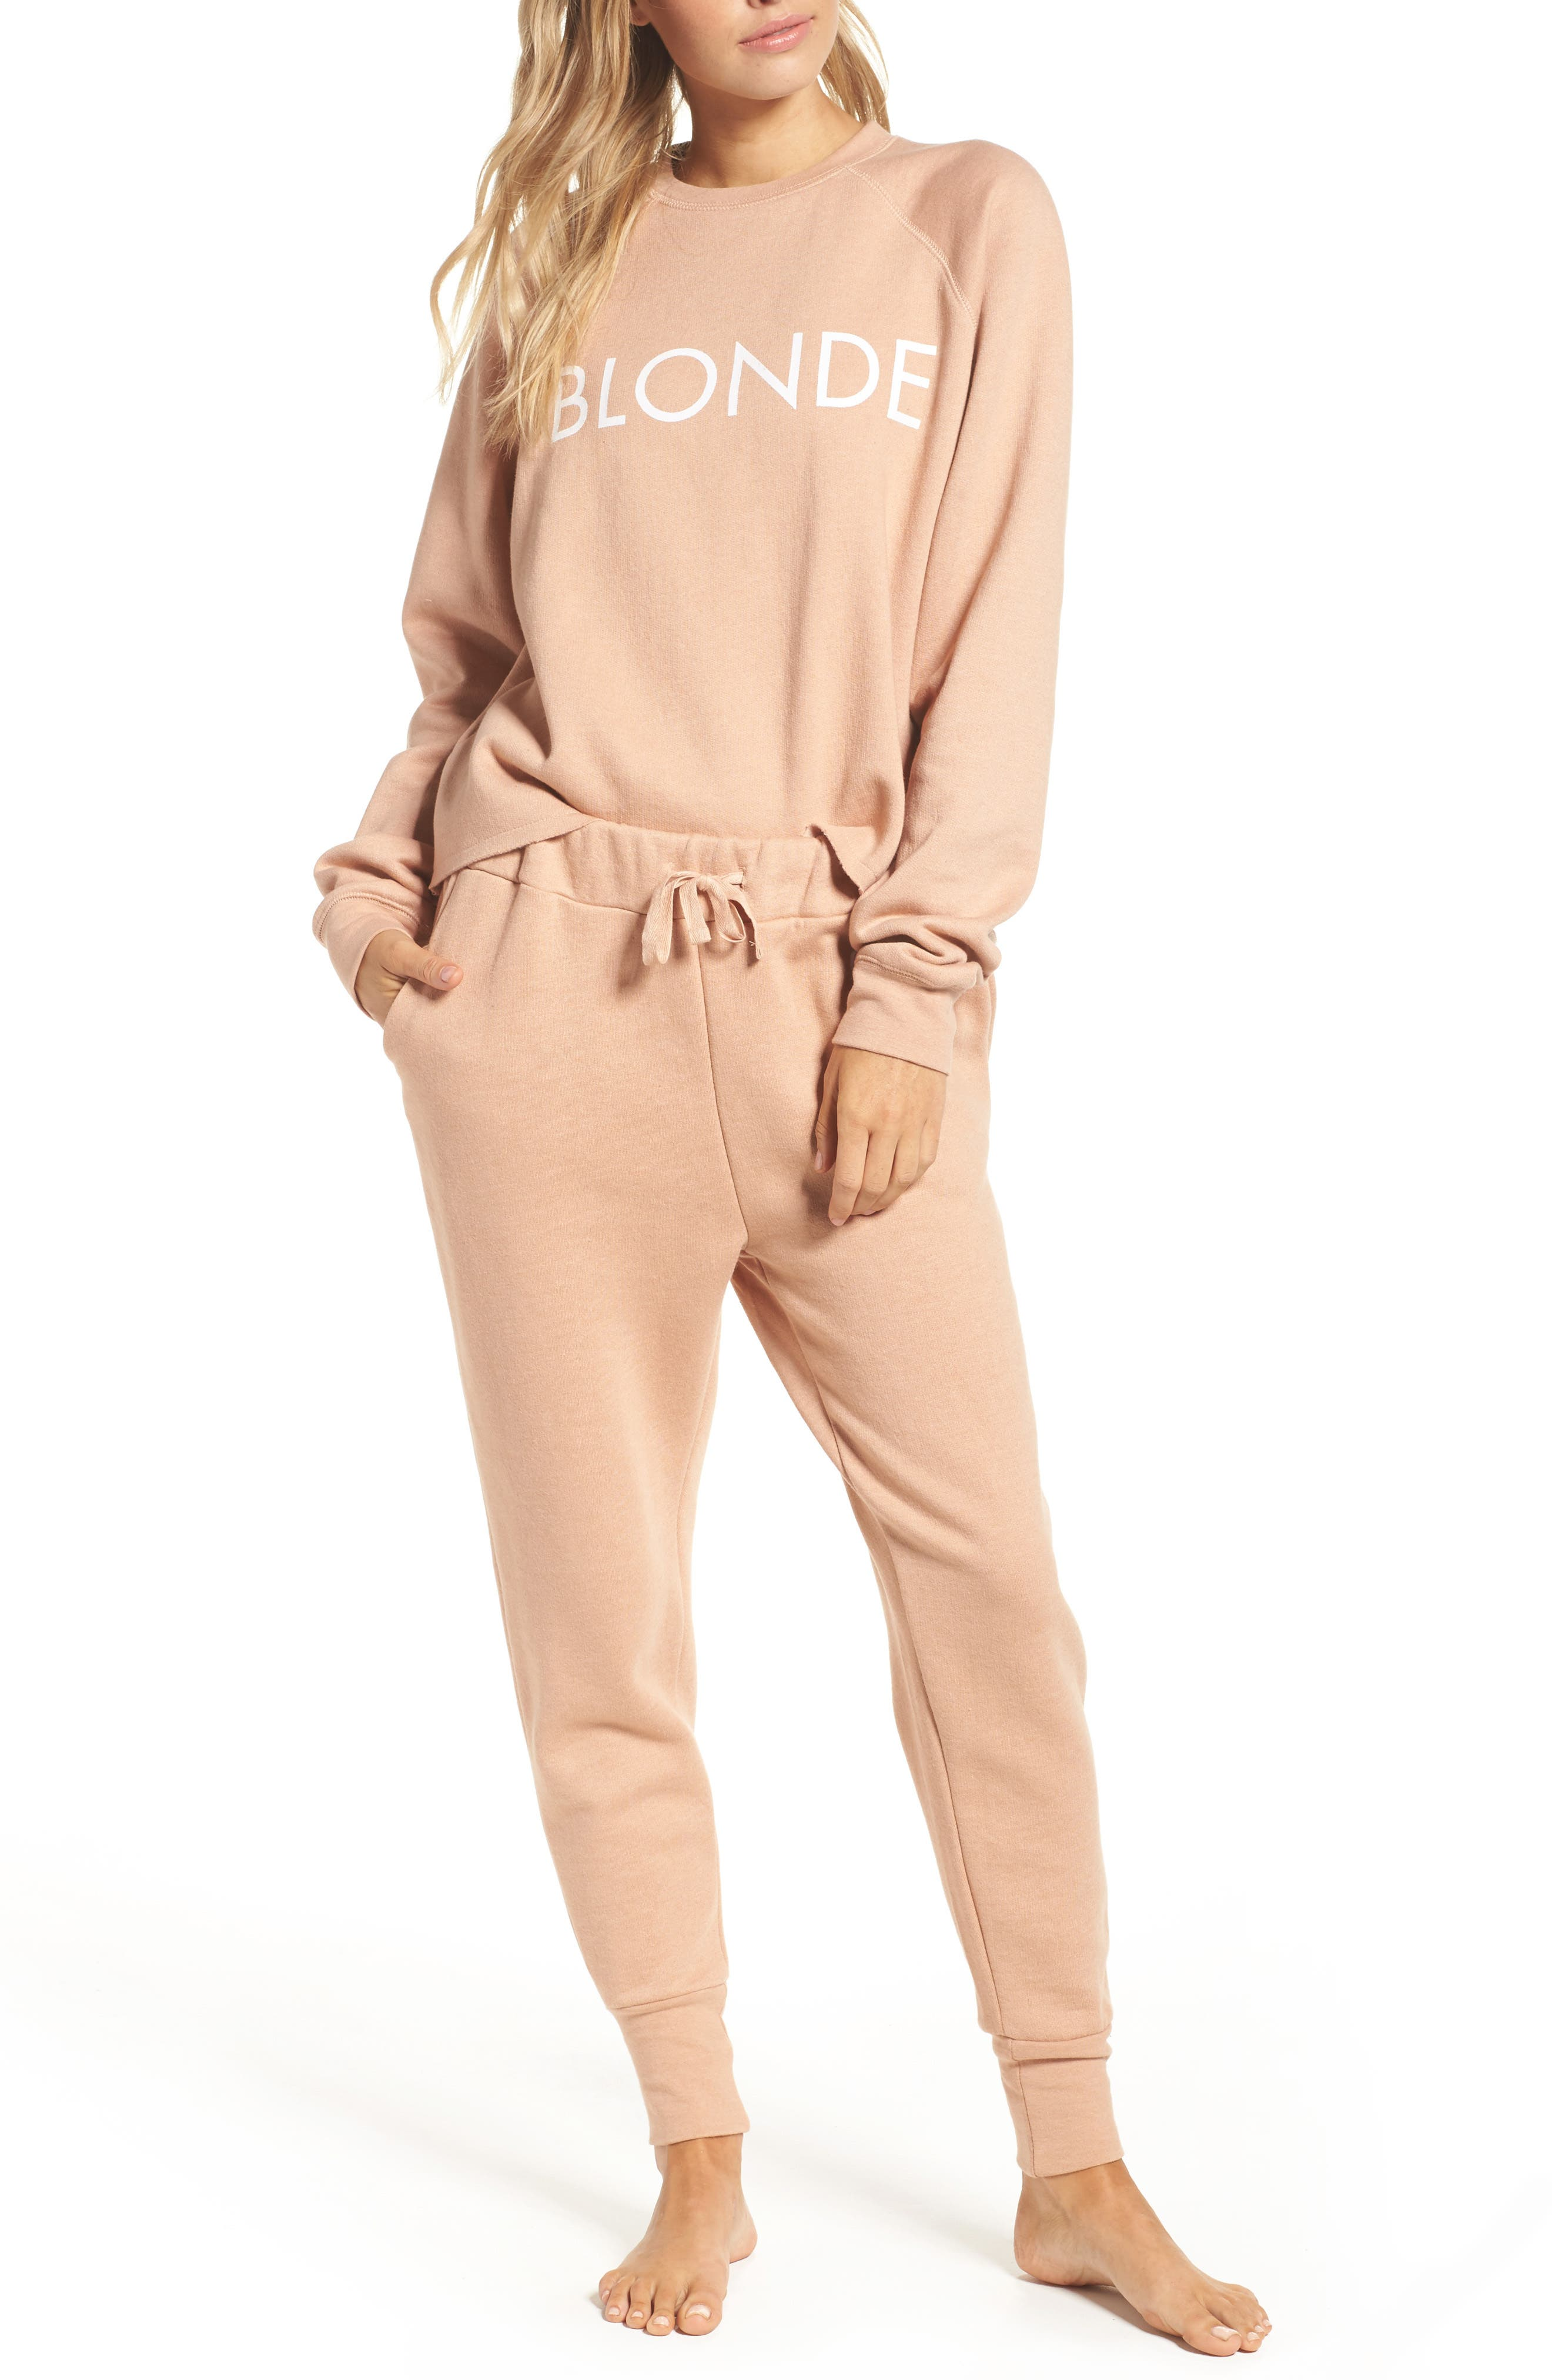 Middle Sister Blonde Sweatshirt,                             Alternate thumbnail 7, color,                             250